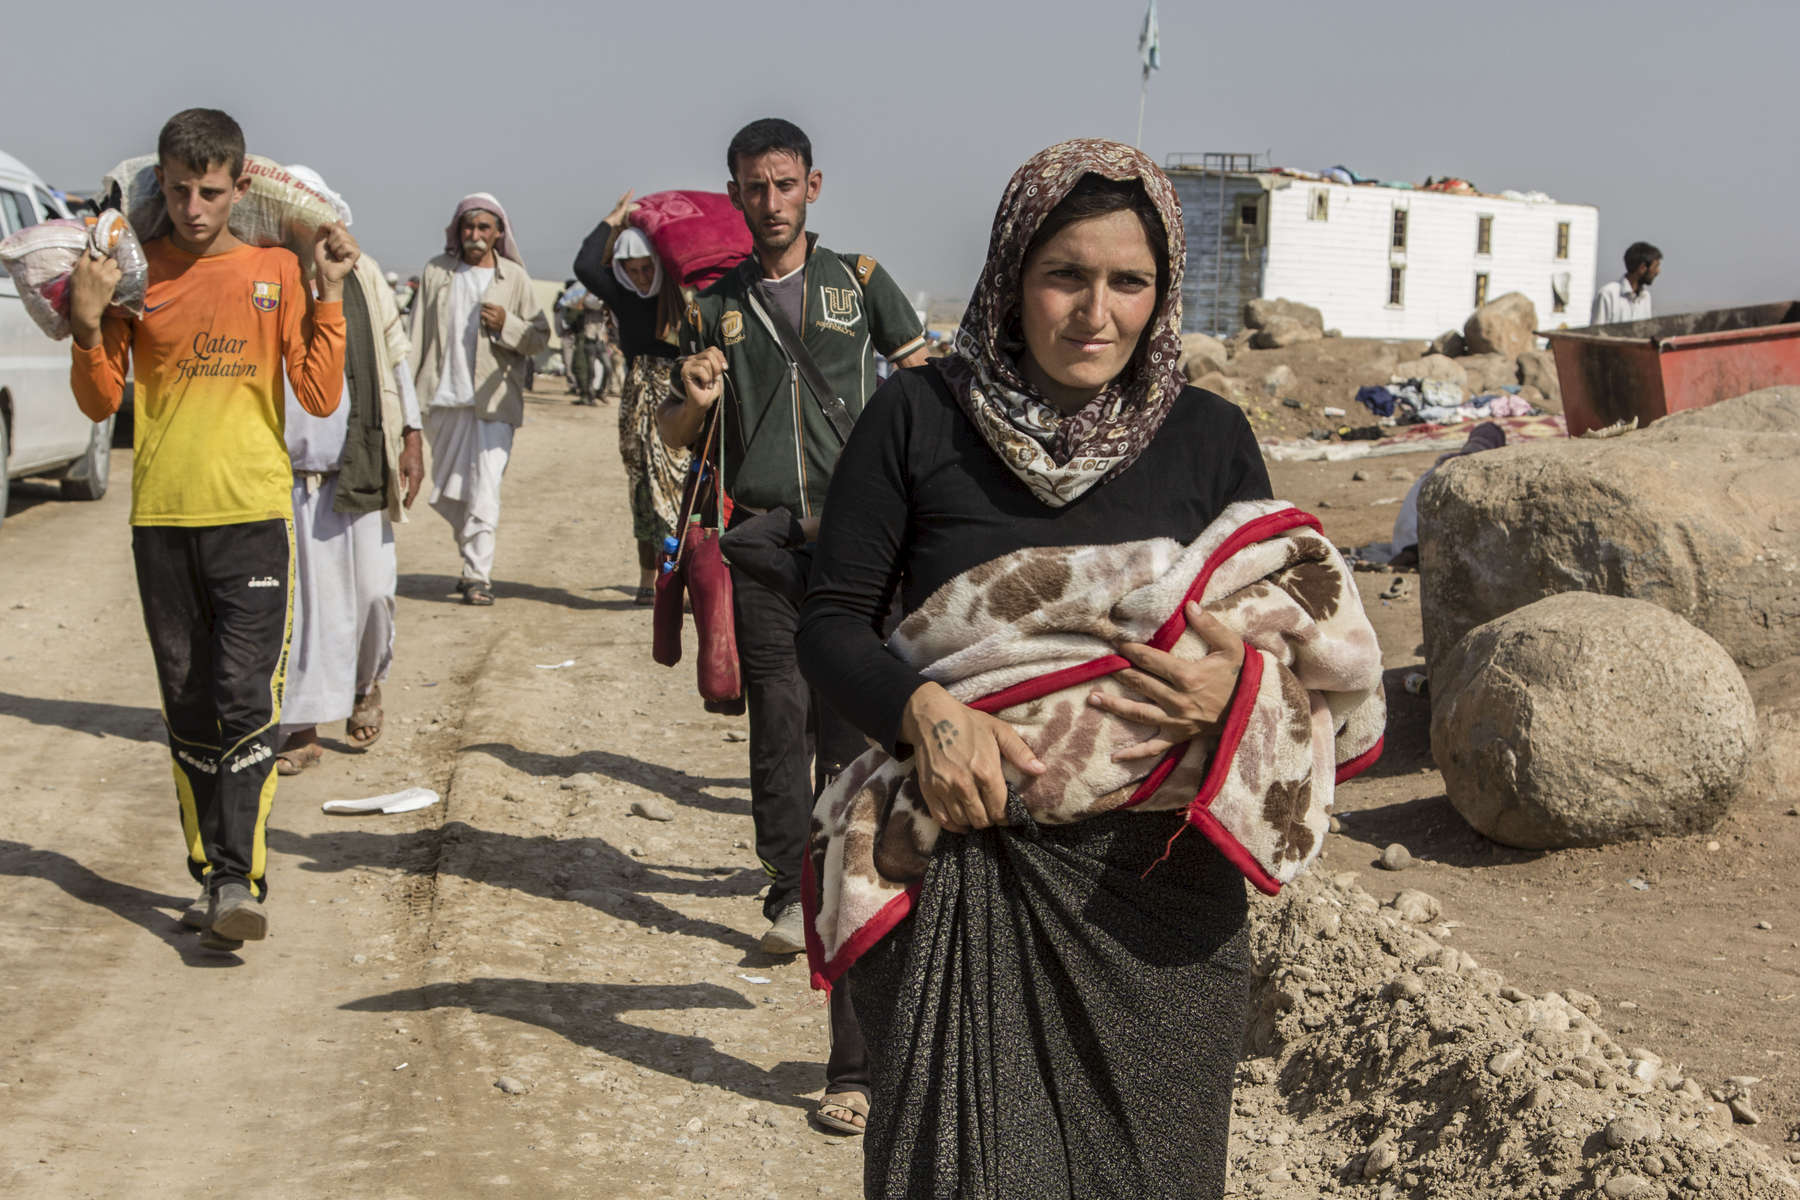 14/08/2014 -- Newroz Camp, Dirk, Syria -- Yazidi people reach Newroz camp after a long way from Sinjar mountain.